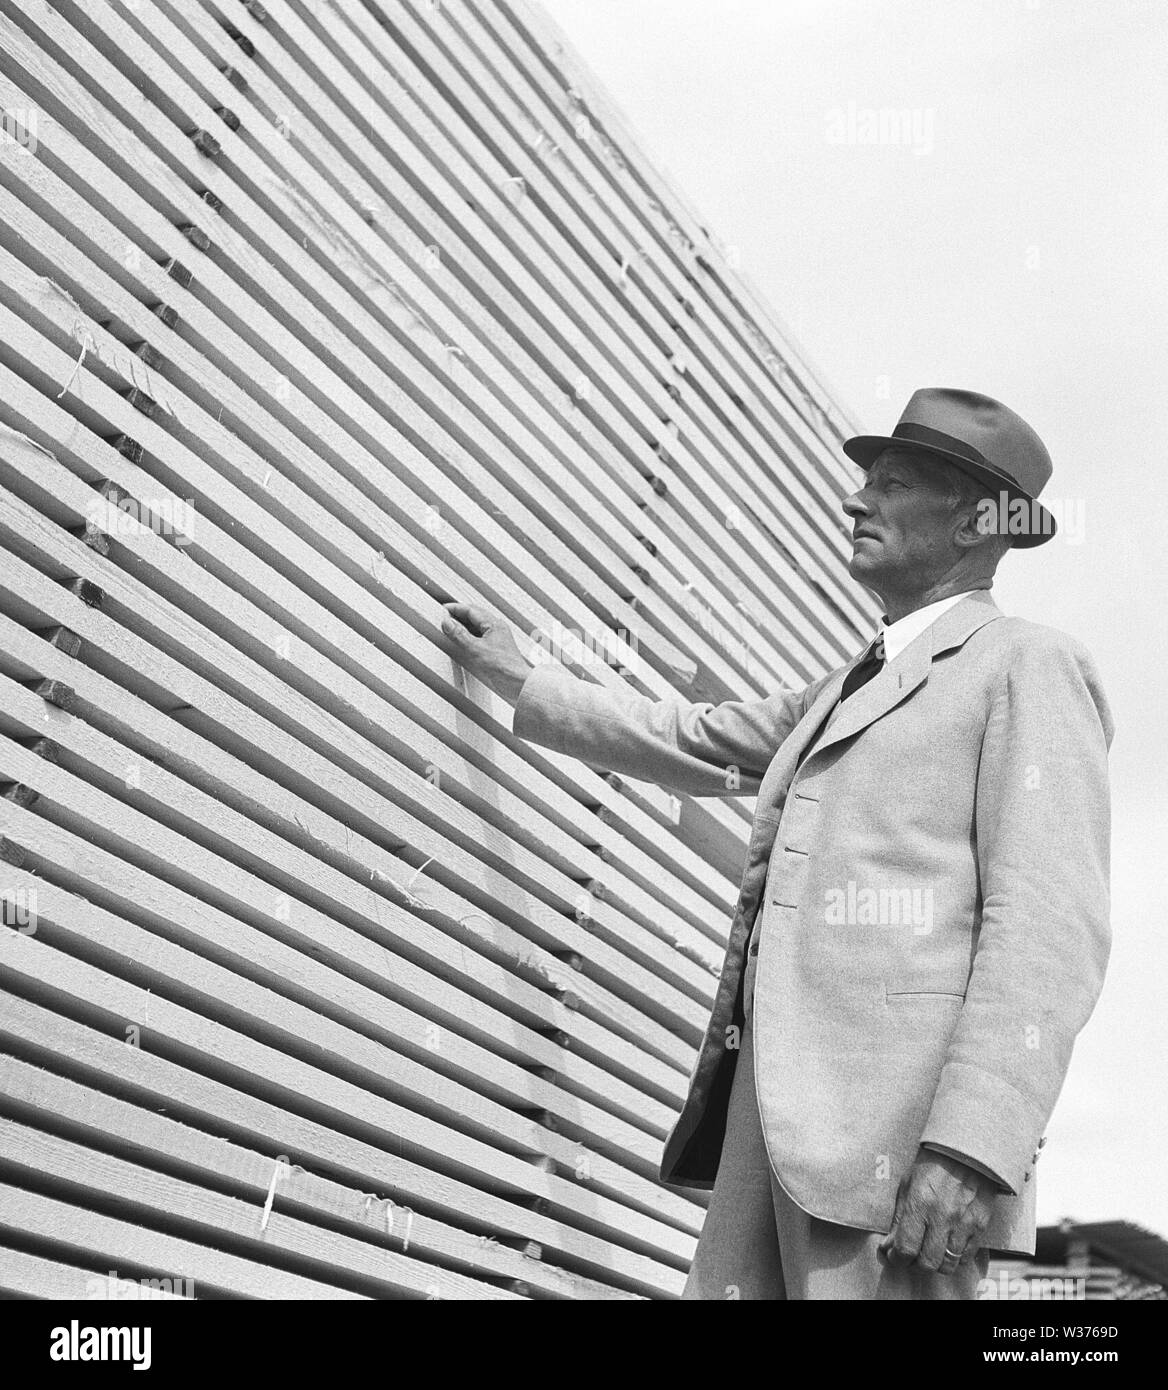 Stacks of wood boards stored correctly at a sawmill. A director is having a look that the quality is right. Sweden 1940. Kristoffersson ref 205-9 - Stock Image